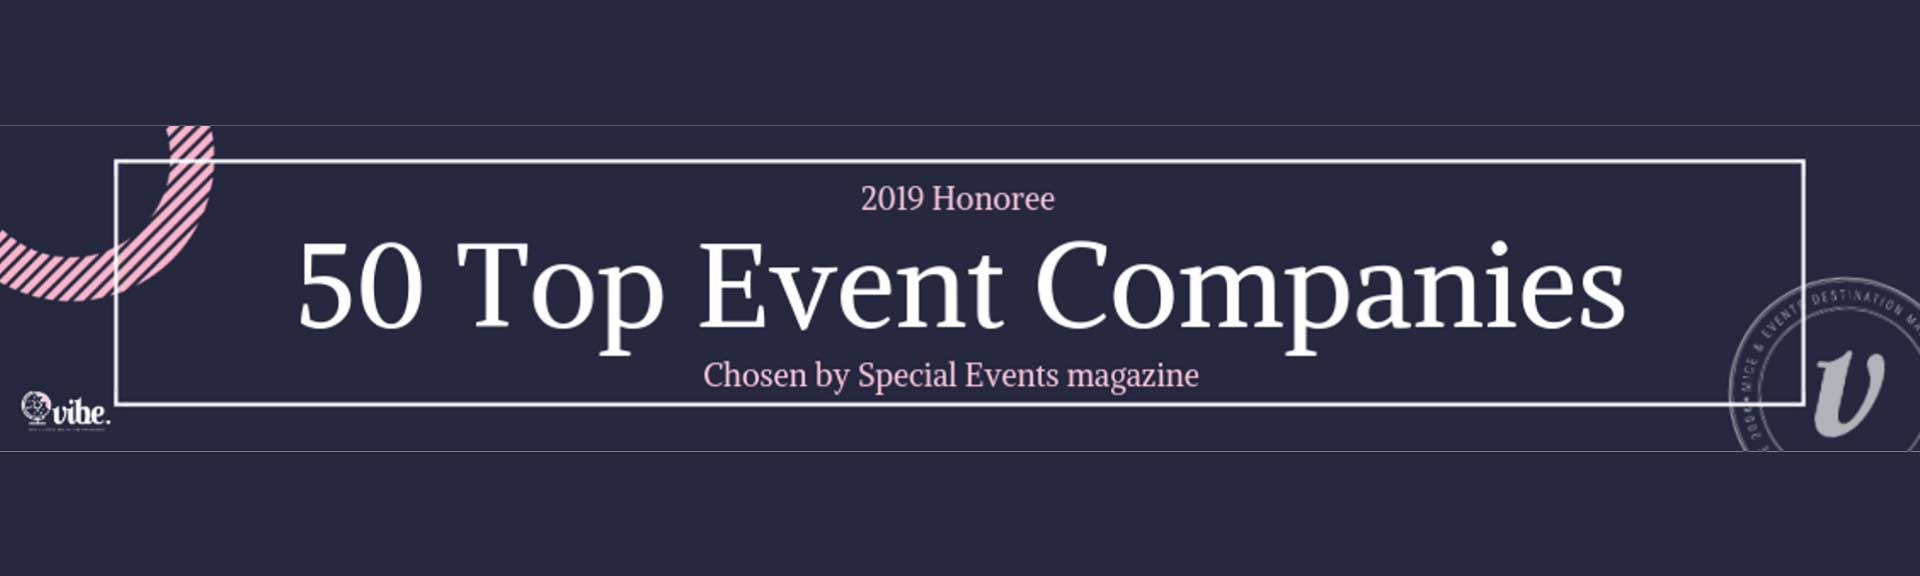 Top 50 event Companies